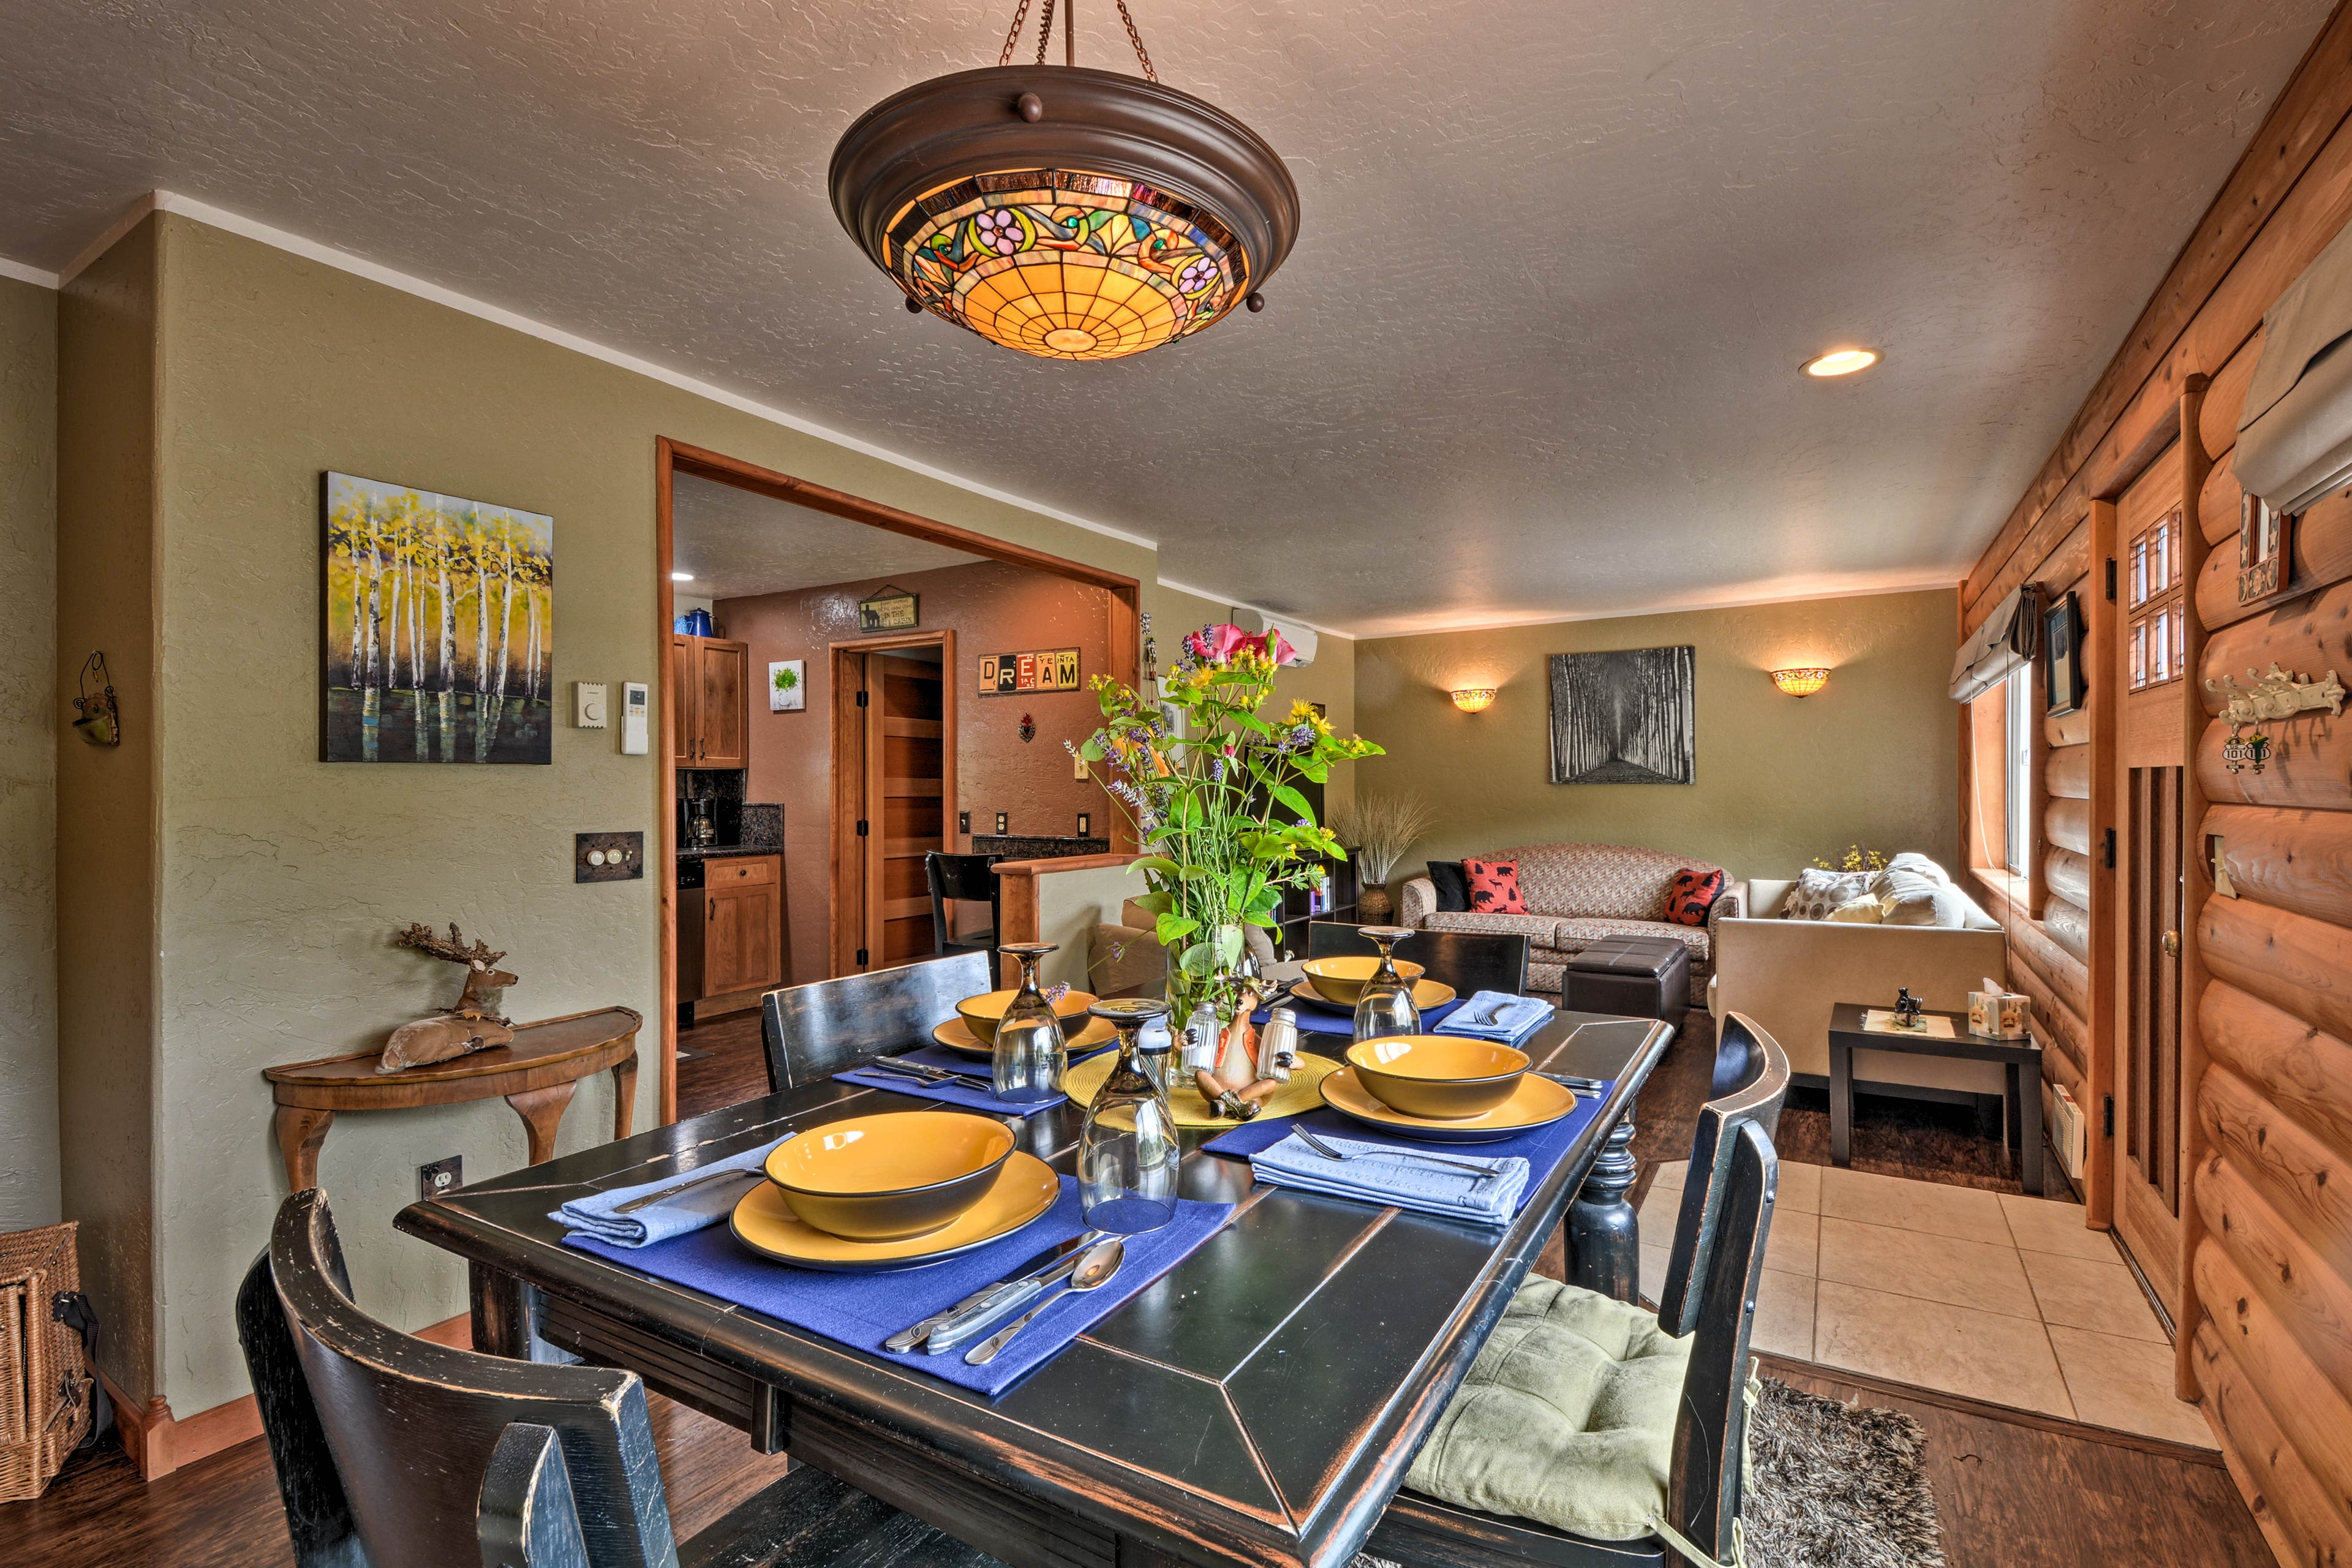 Dine with local Oregon wine at this vacation rental!